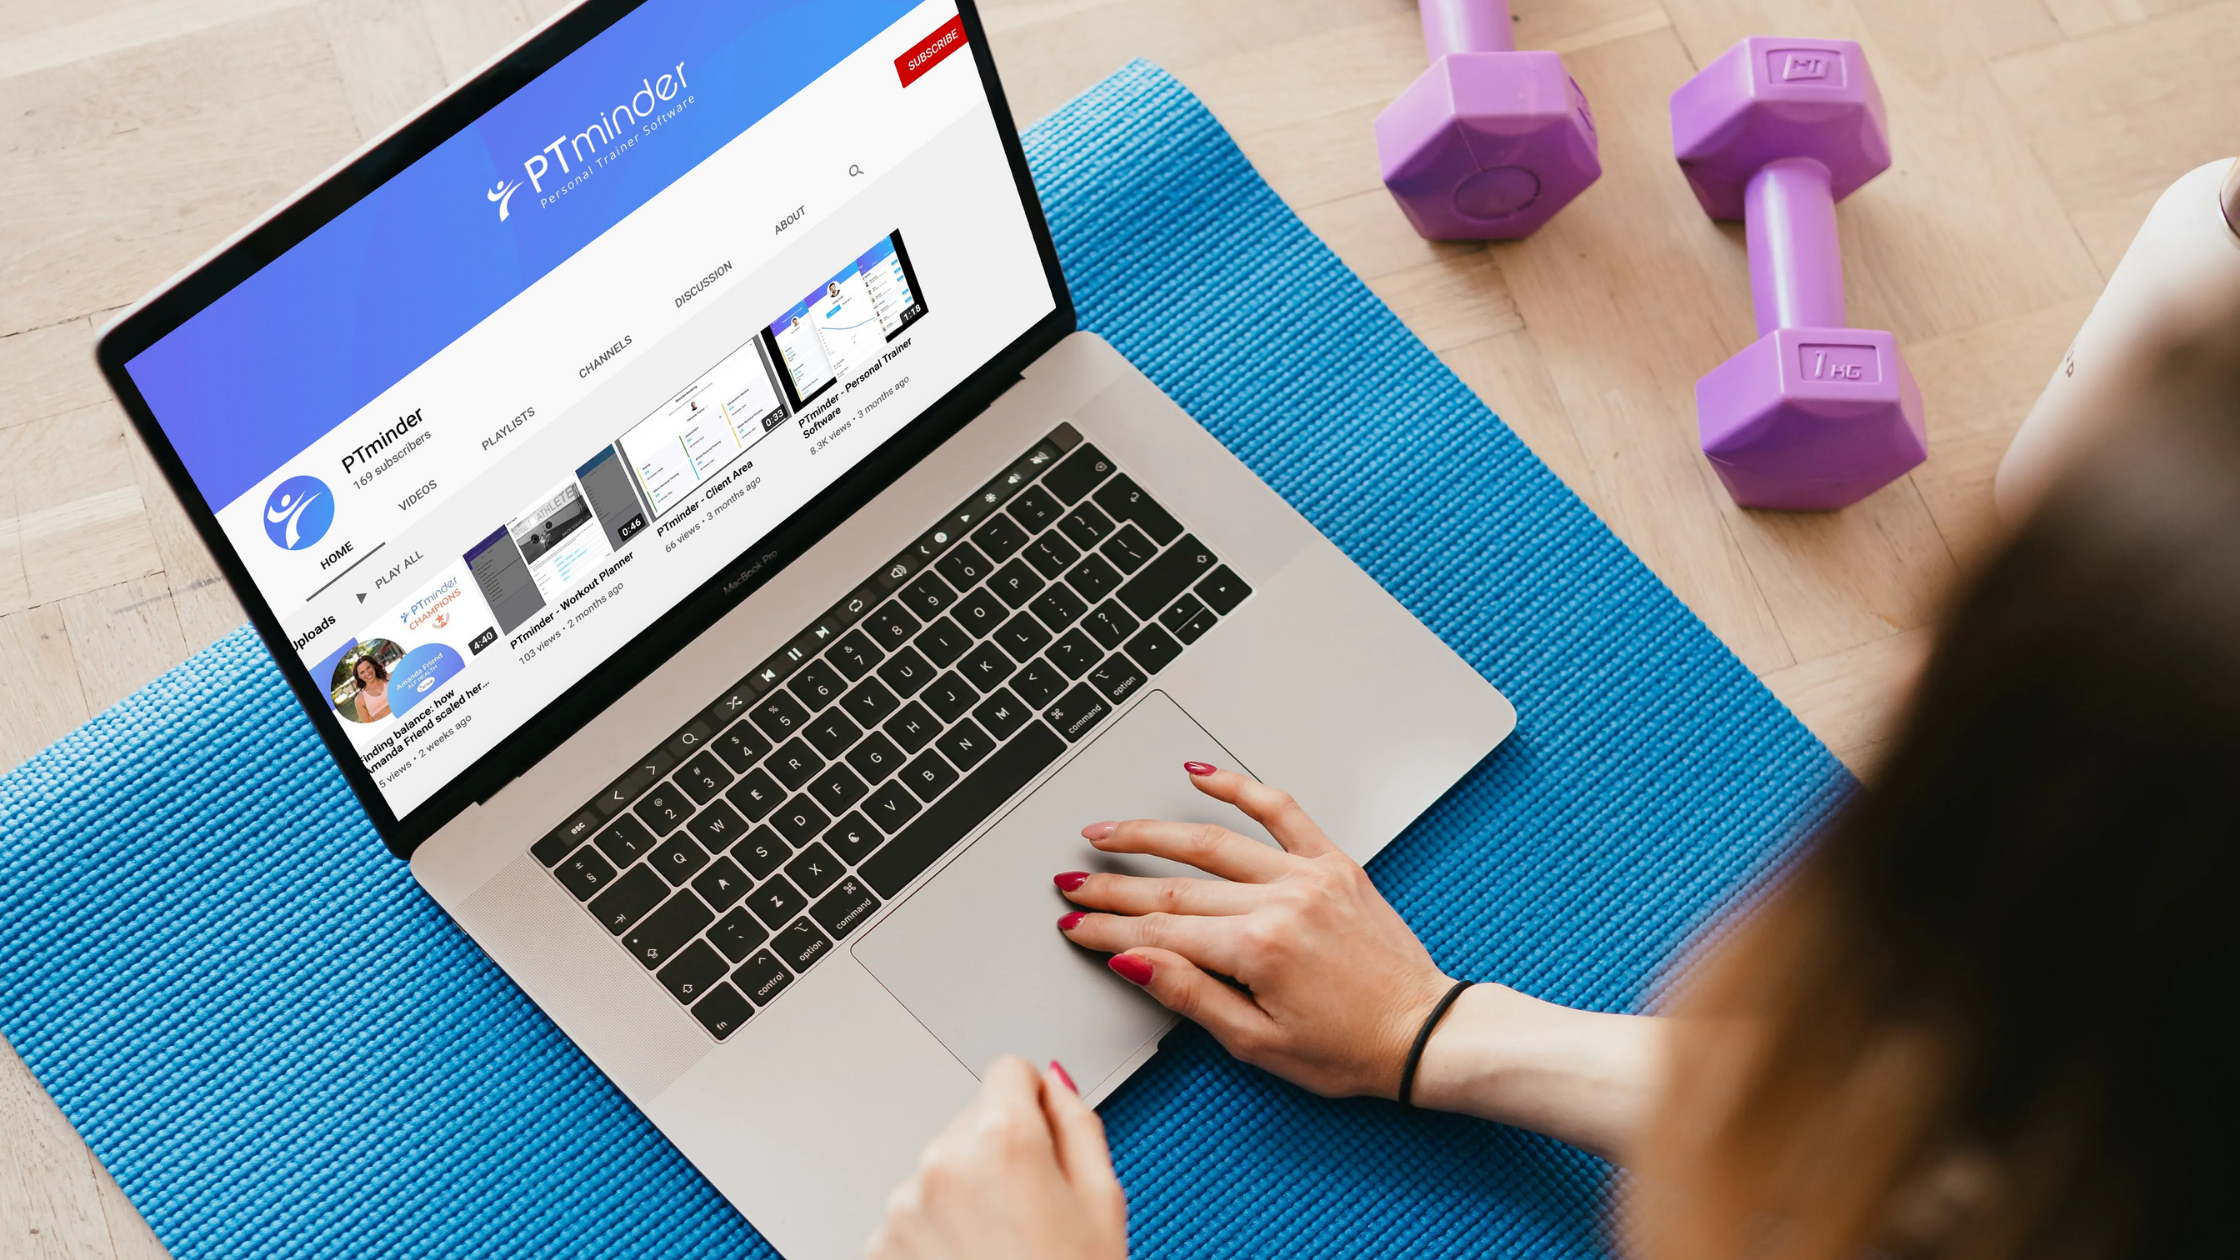 The era of the fit'luencer: 8 steps to build a successful social media channel for your PT Business